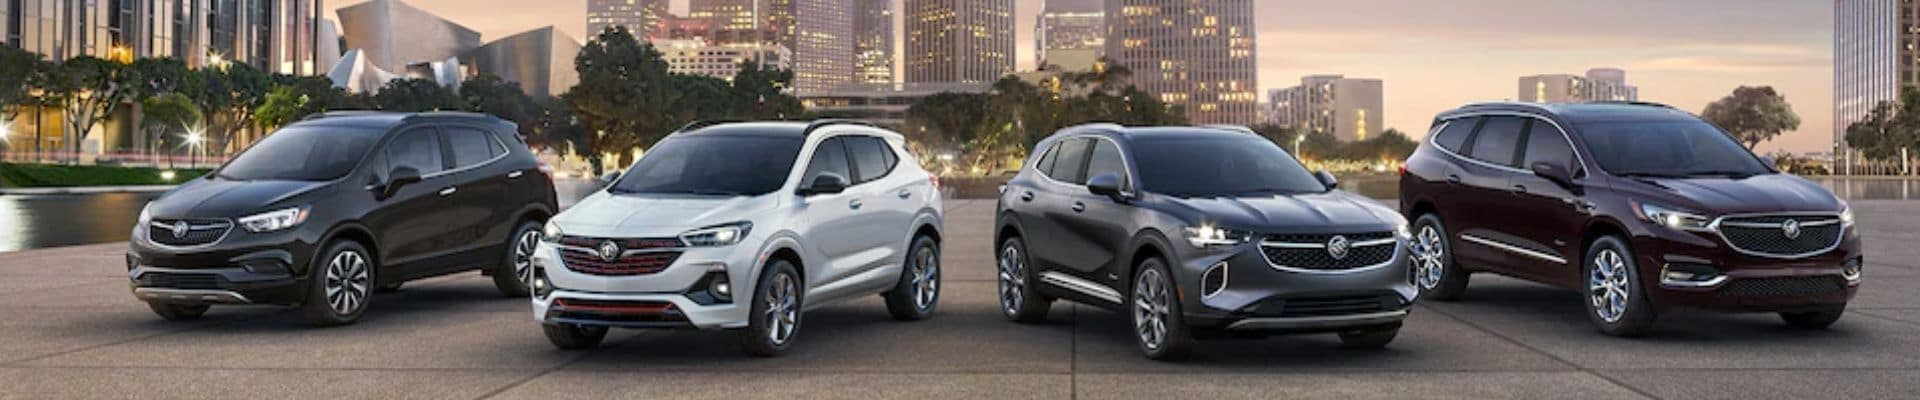 2021 Buick Lineup With City Background